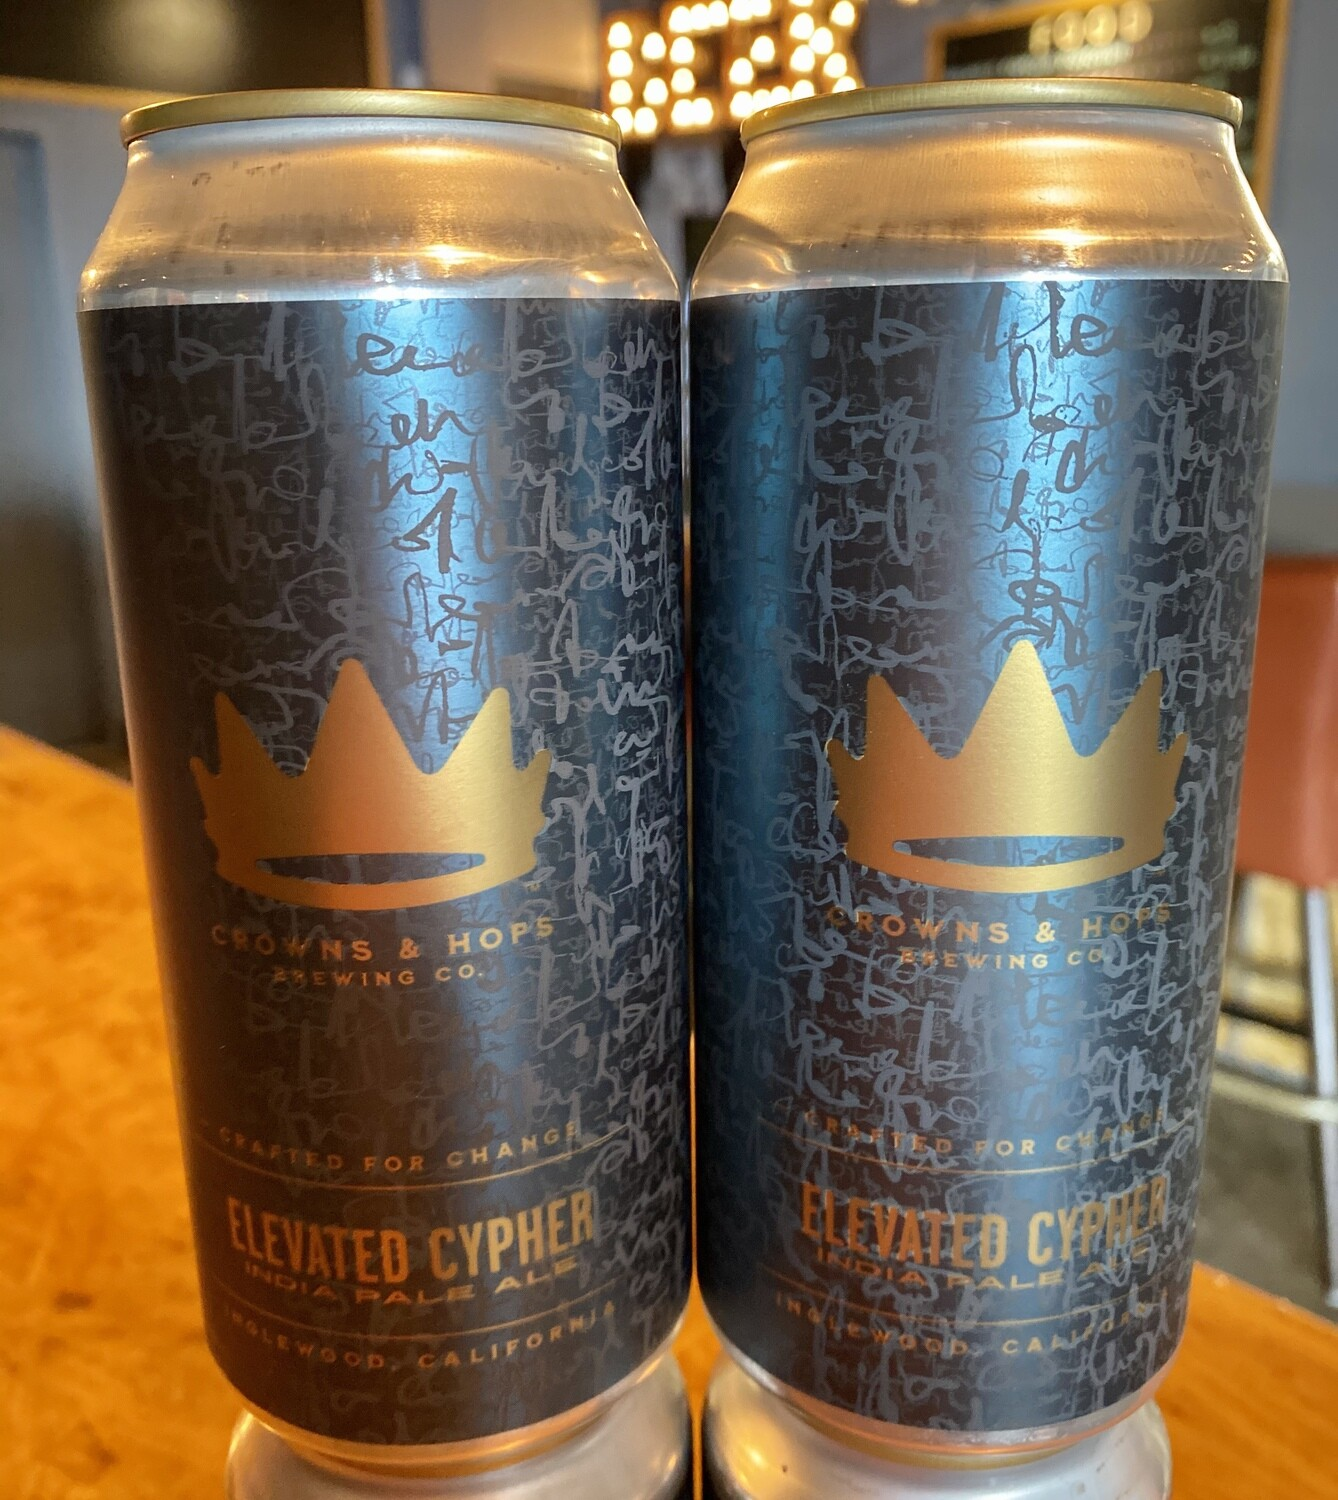 Crown and Hops Elevated Cypher